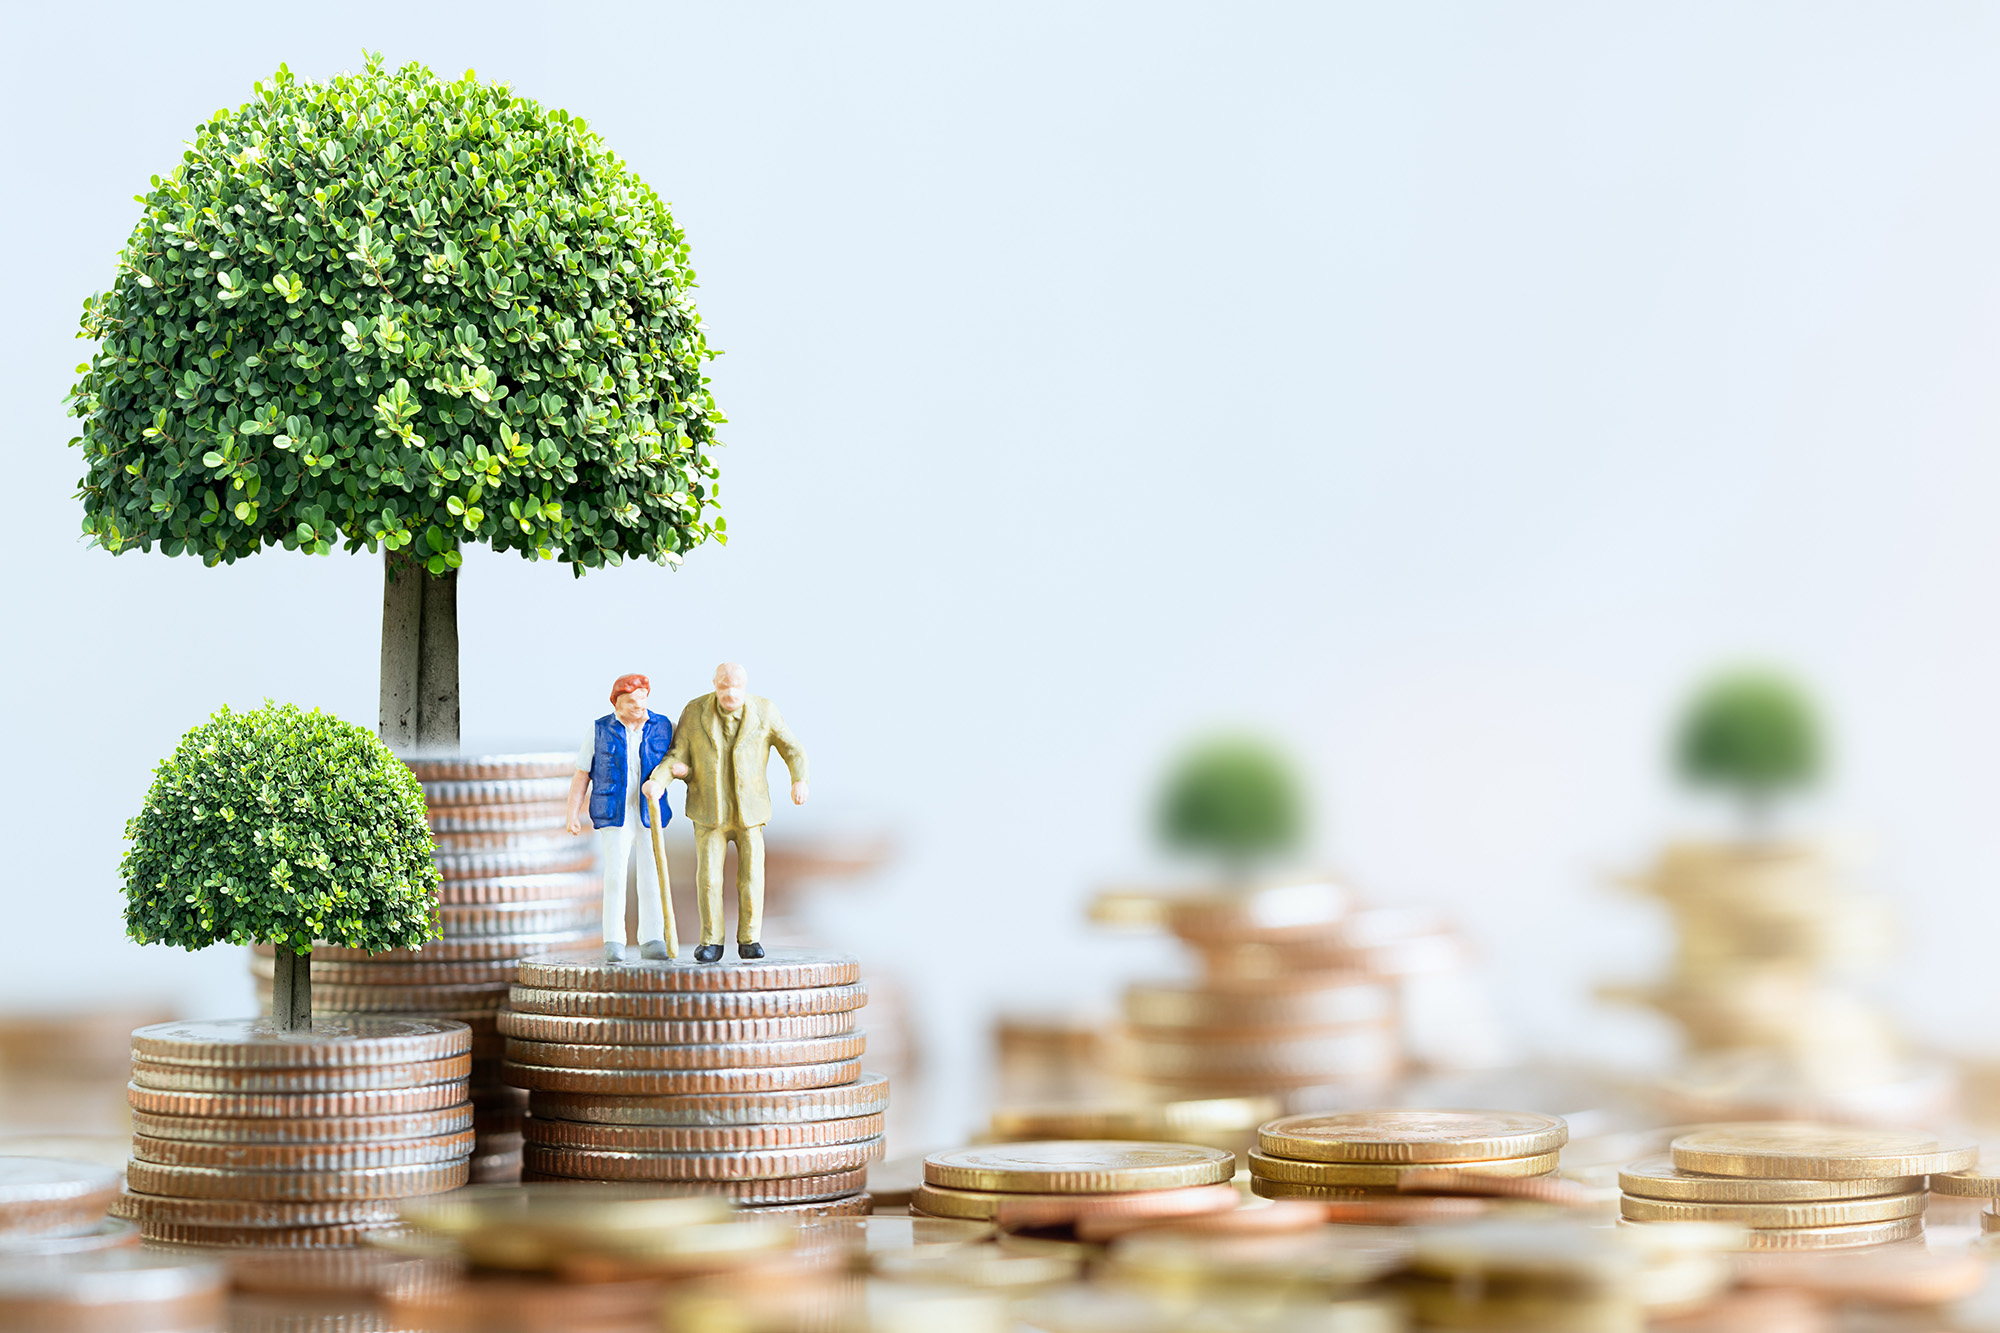 Miniature people: Elderly people sitting on coins stack. social